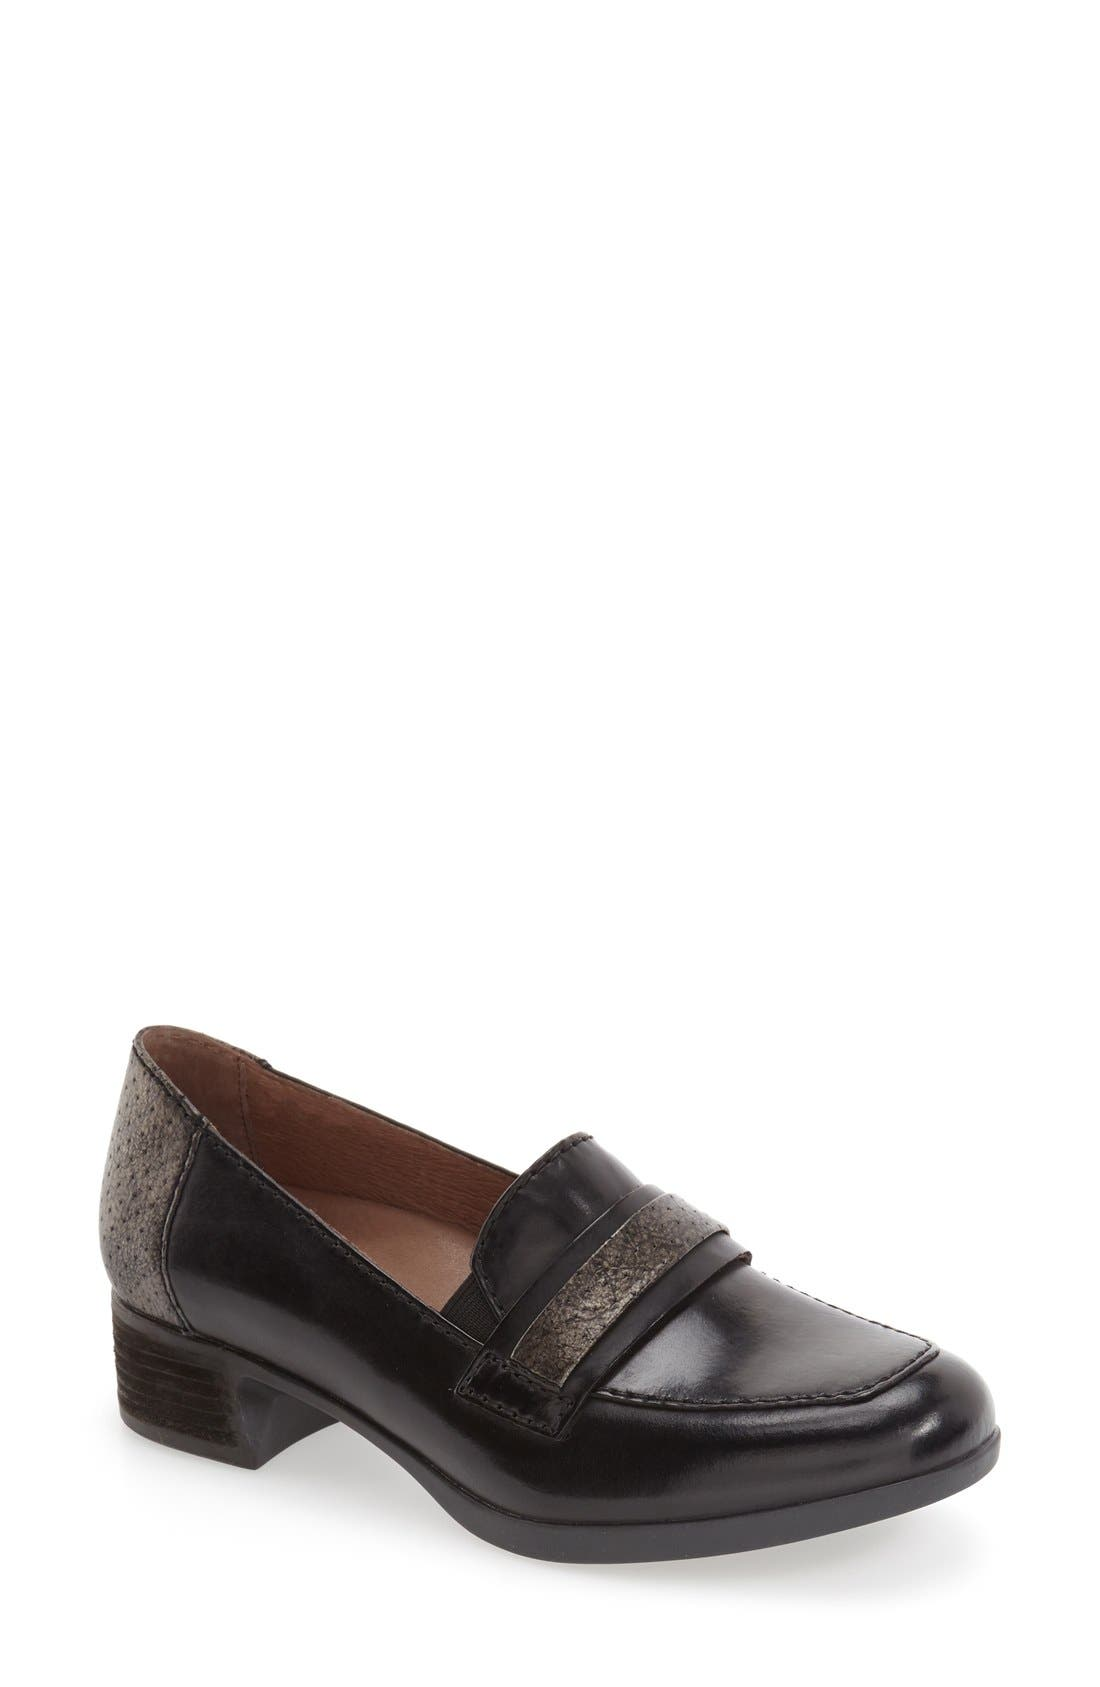 'Lila' Loafer,                         Main,                         color, 001